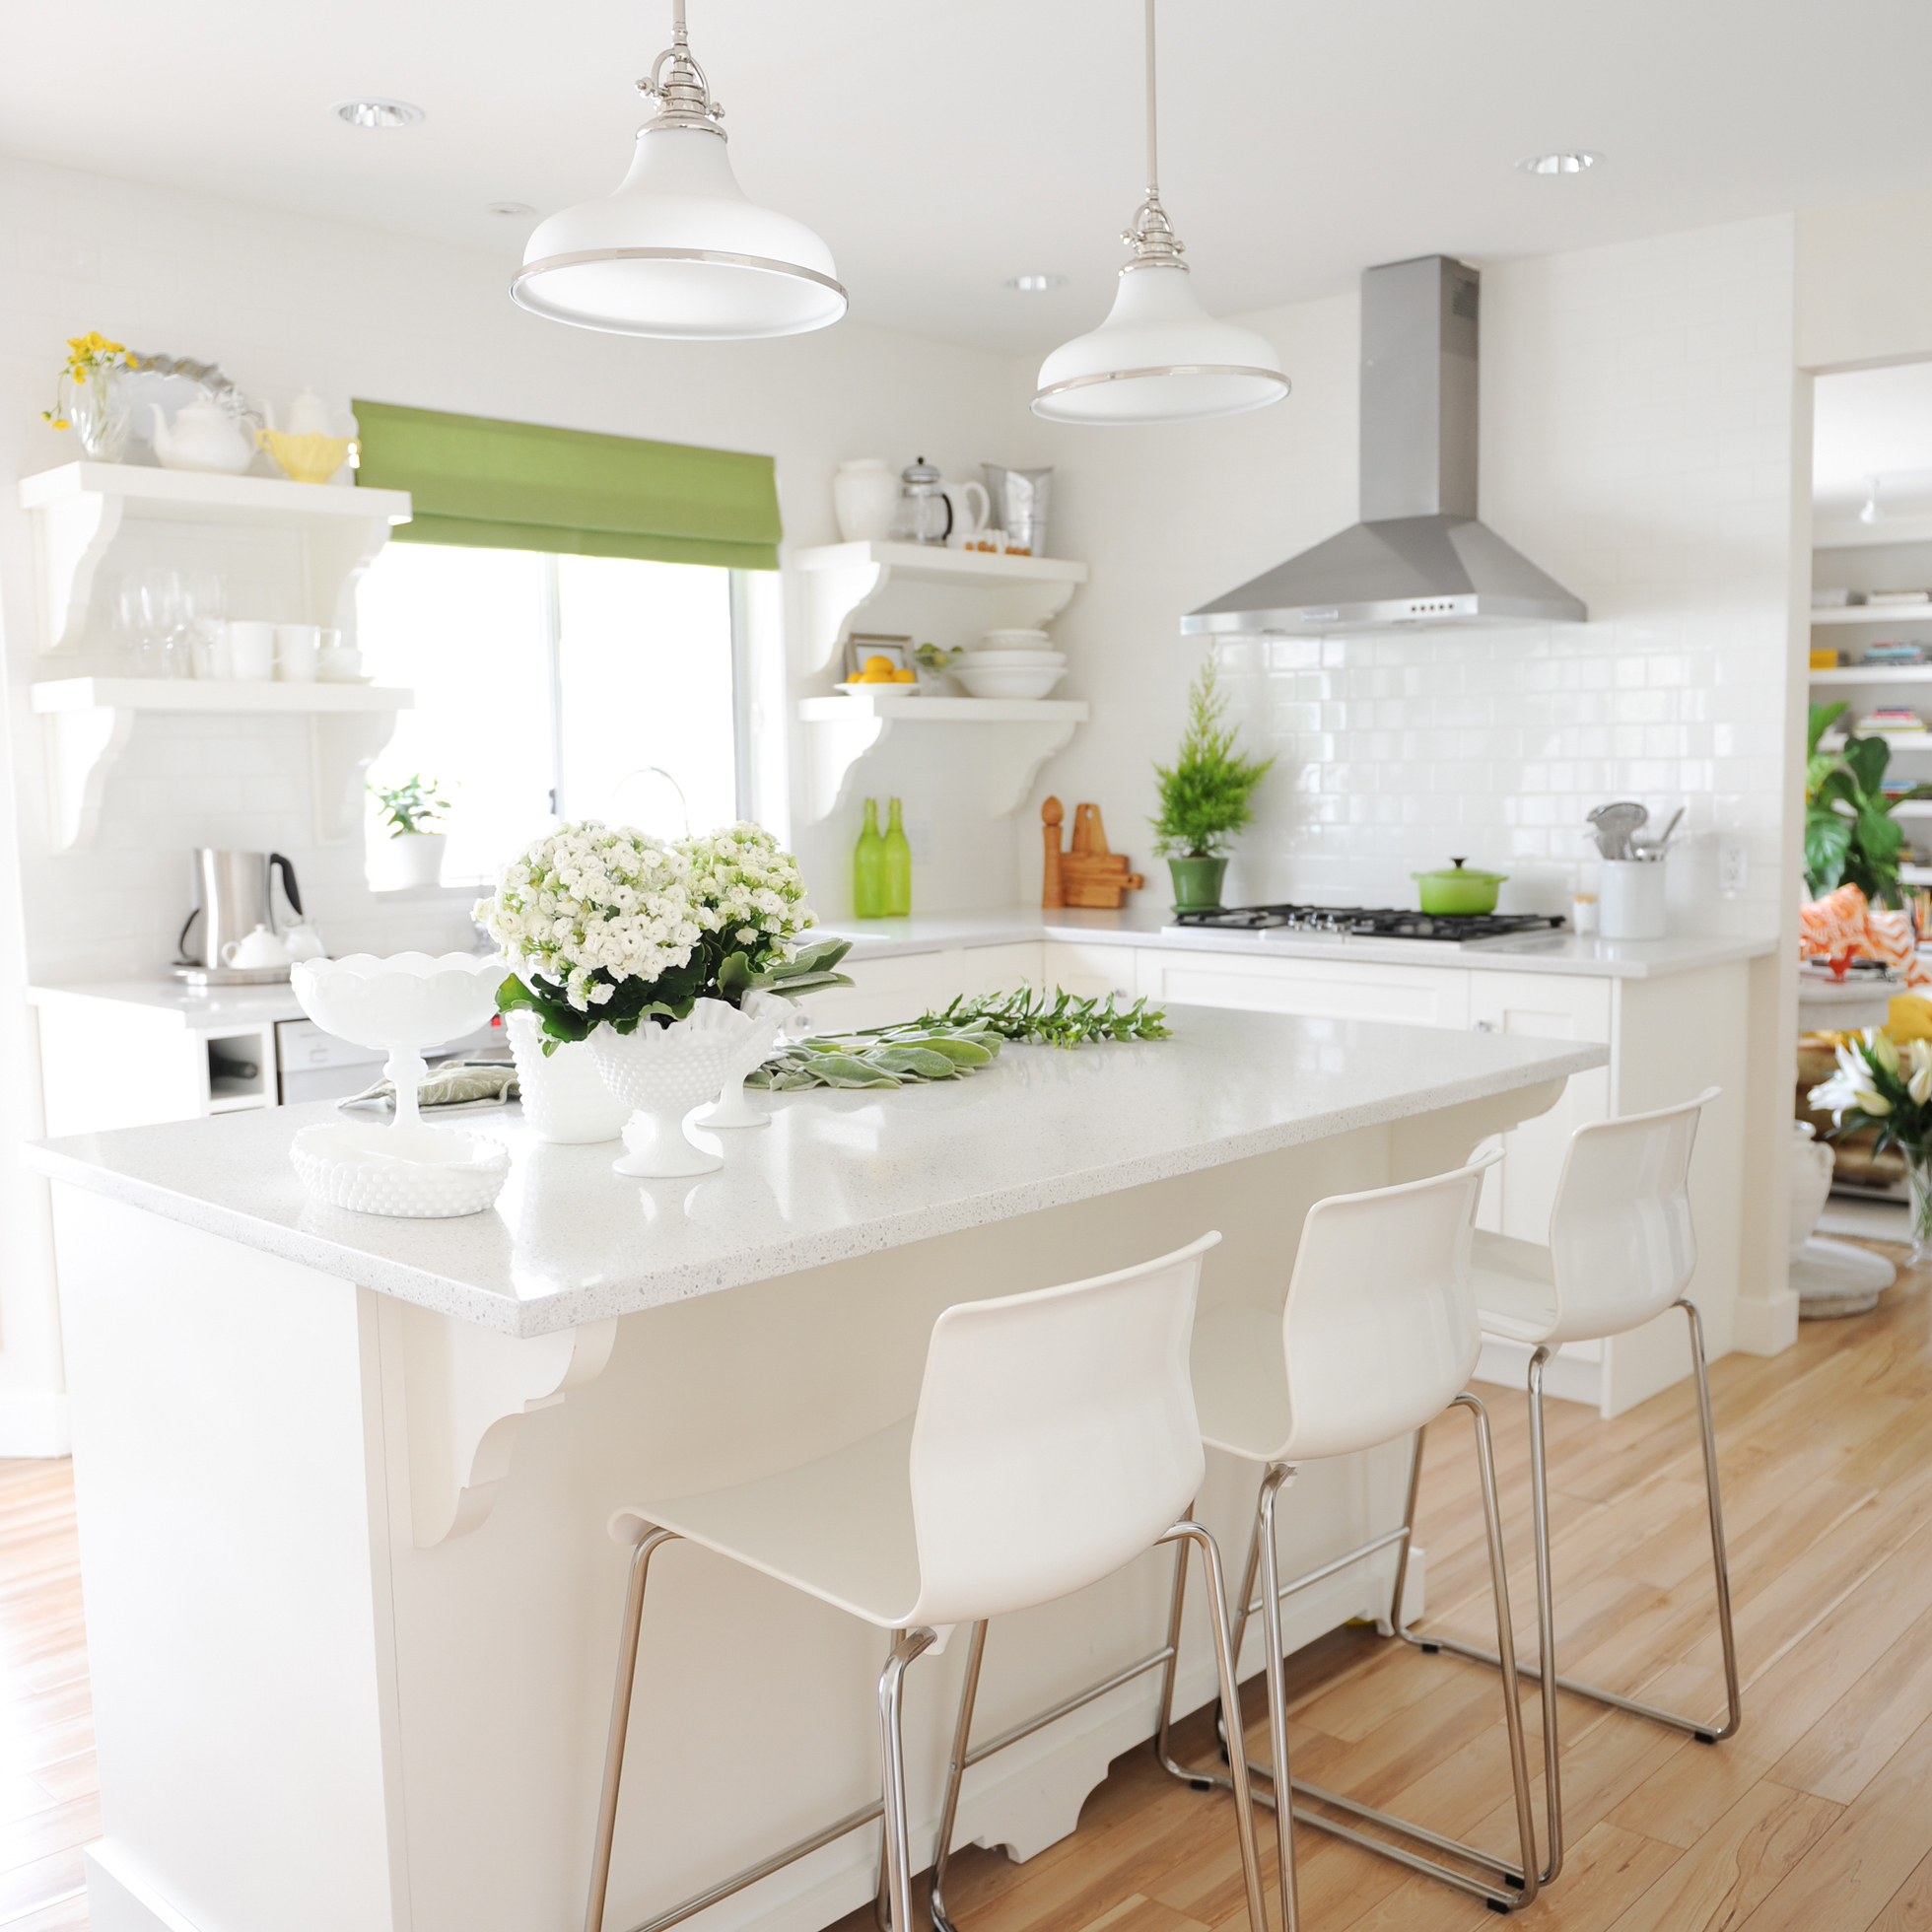 hamptons kitchen with light green accents